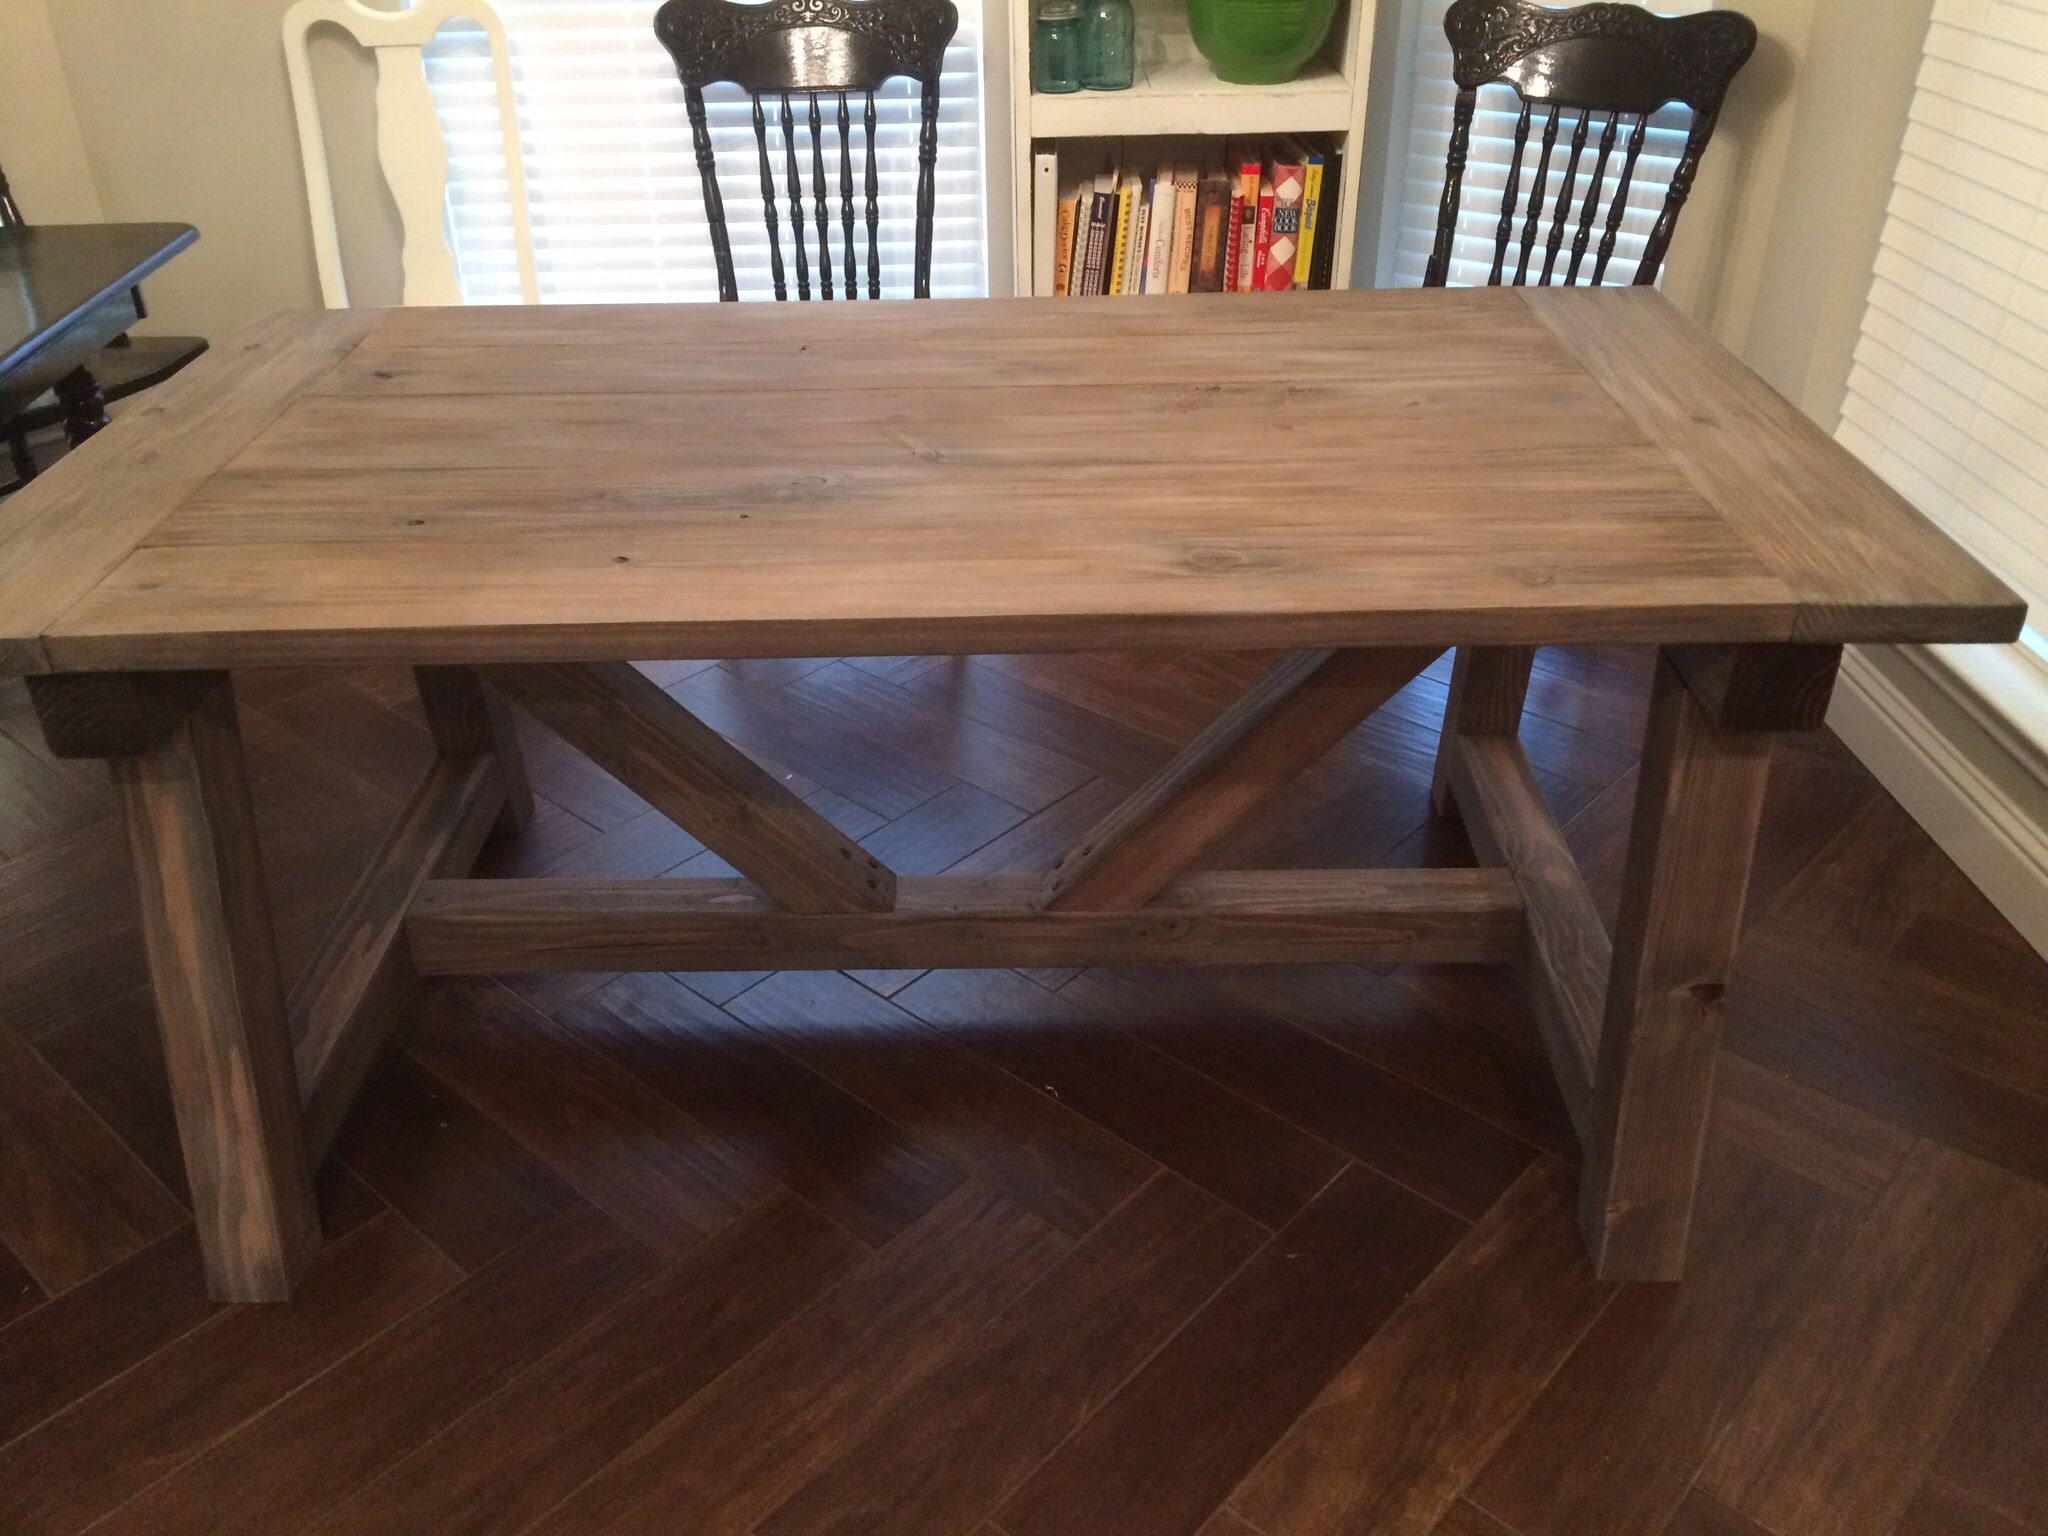 New Kitchen Table Made Of 2x8 2x10 And 4x4 S Finished With Dark Walnut Stain And Then White Washed Build A Table Commercial Style Kitchen Table